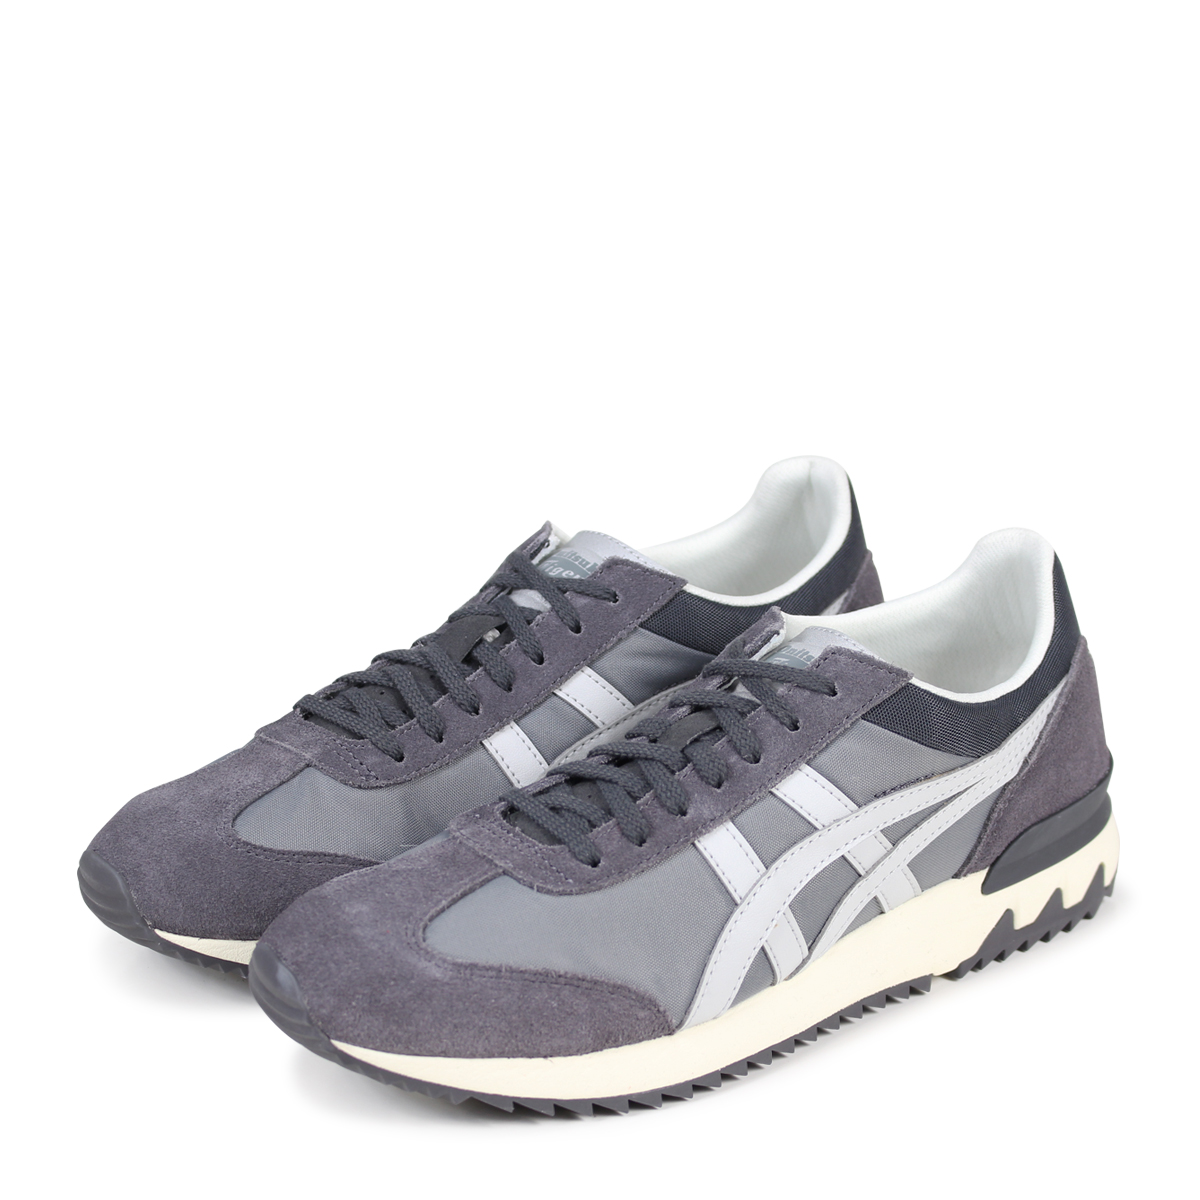 quality design 7cc3a 32e66 Onitsuka Tiger CALIFORNIA 78 EX Onitsuka tiger California men gap Dis  sneakers D800N-1196 gray [load planned Shinnyu load in reservation product  3/3 ...